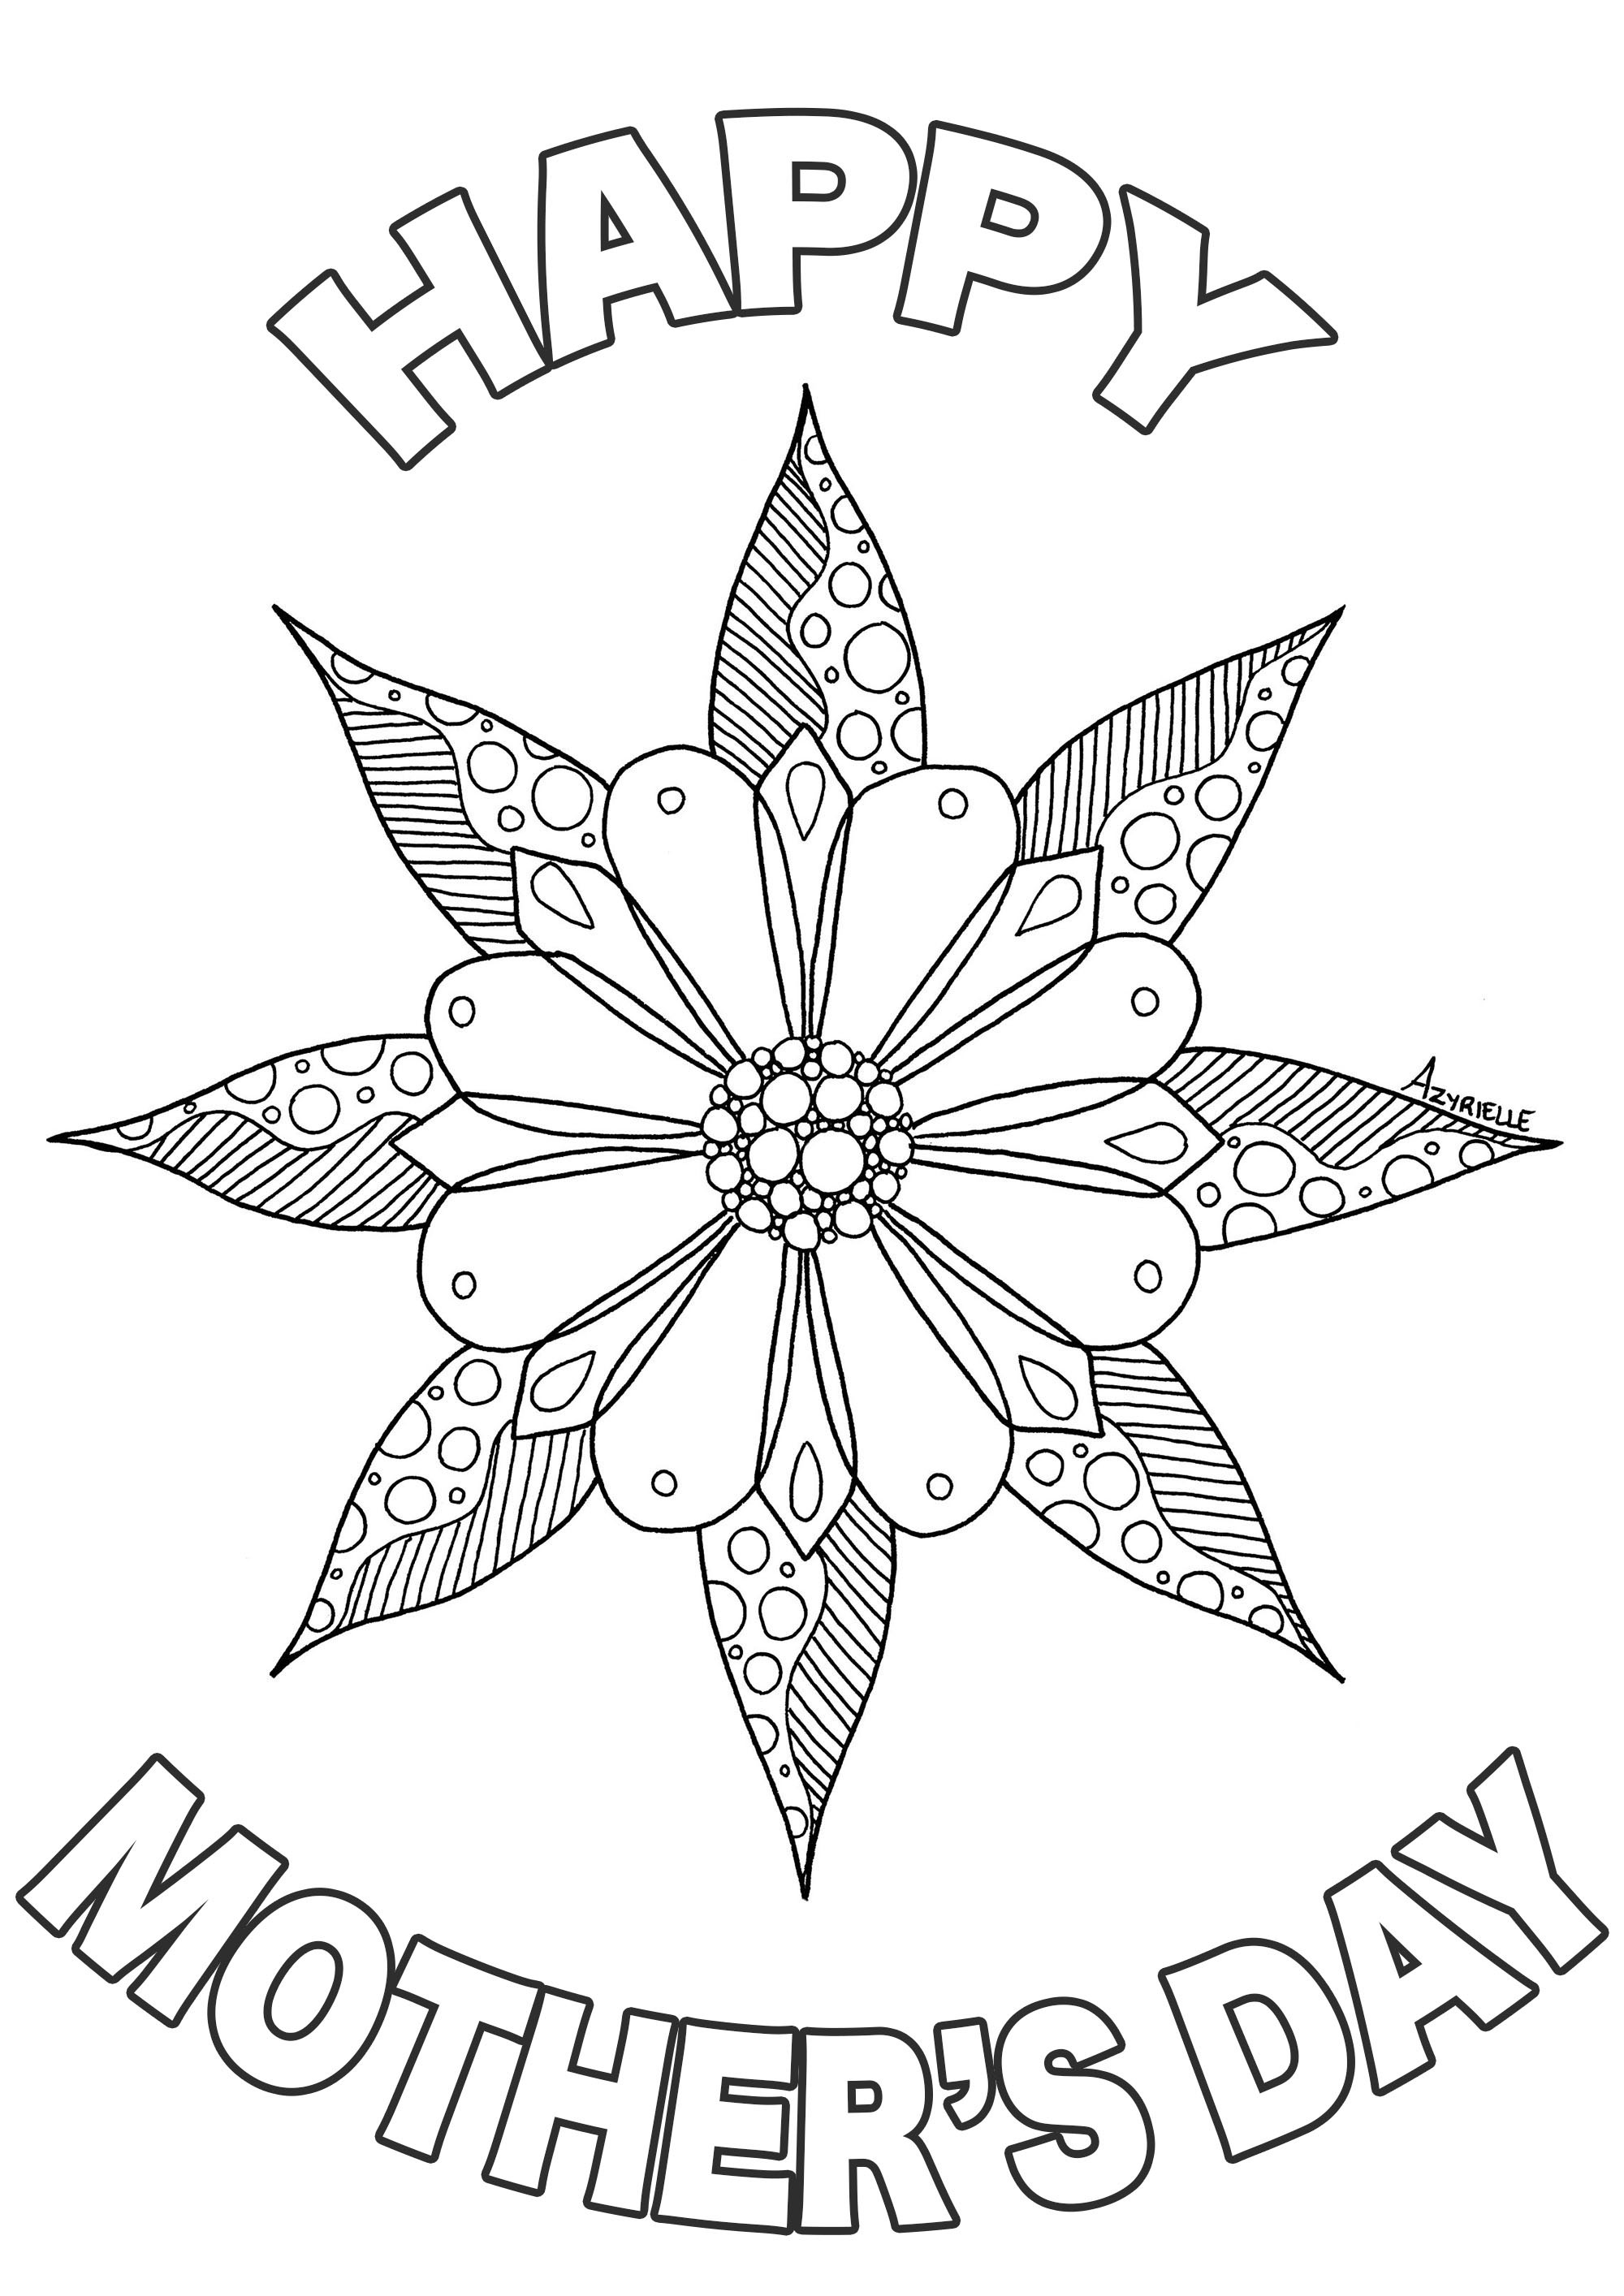 Mothers Day Coloring Pages For Adults  Mother s day Mother s Day Adult Coloring Pages